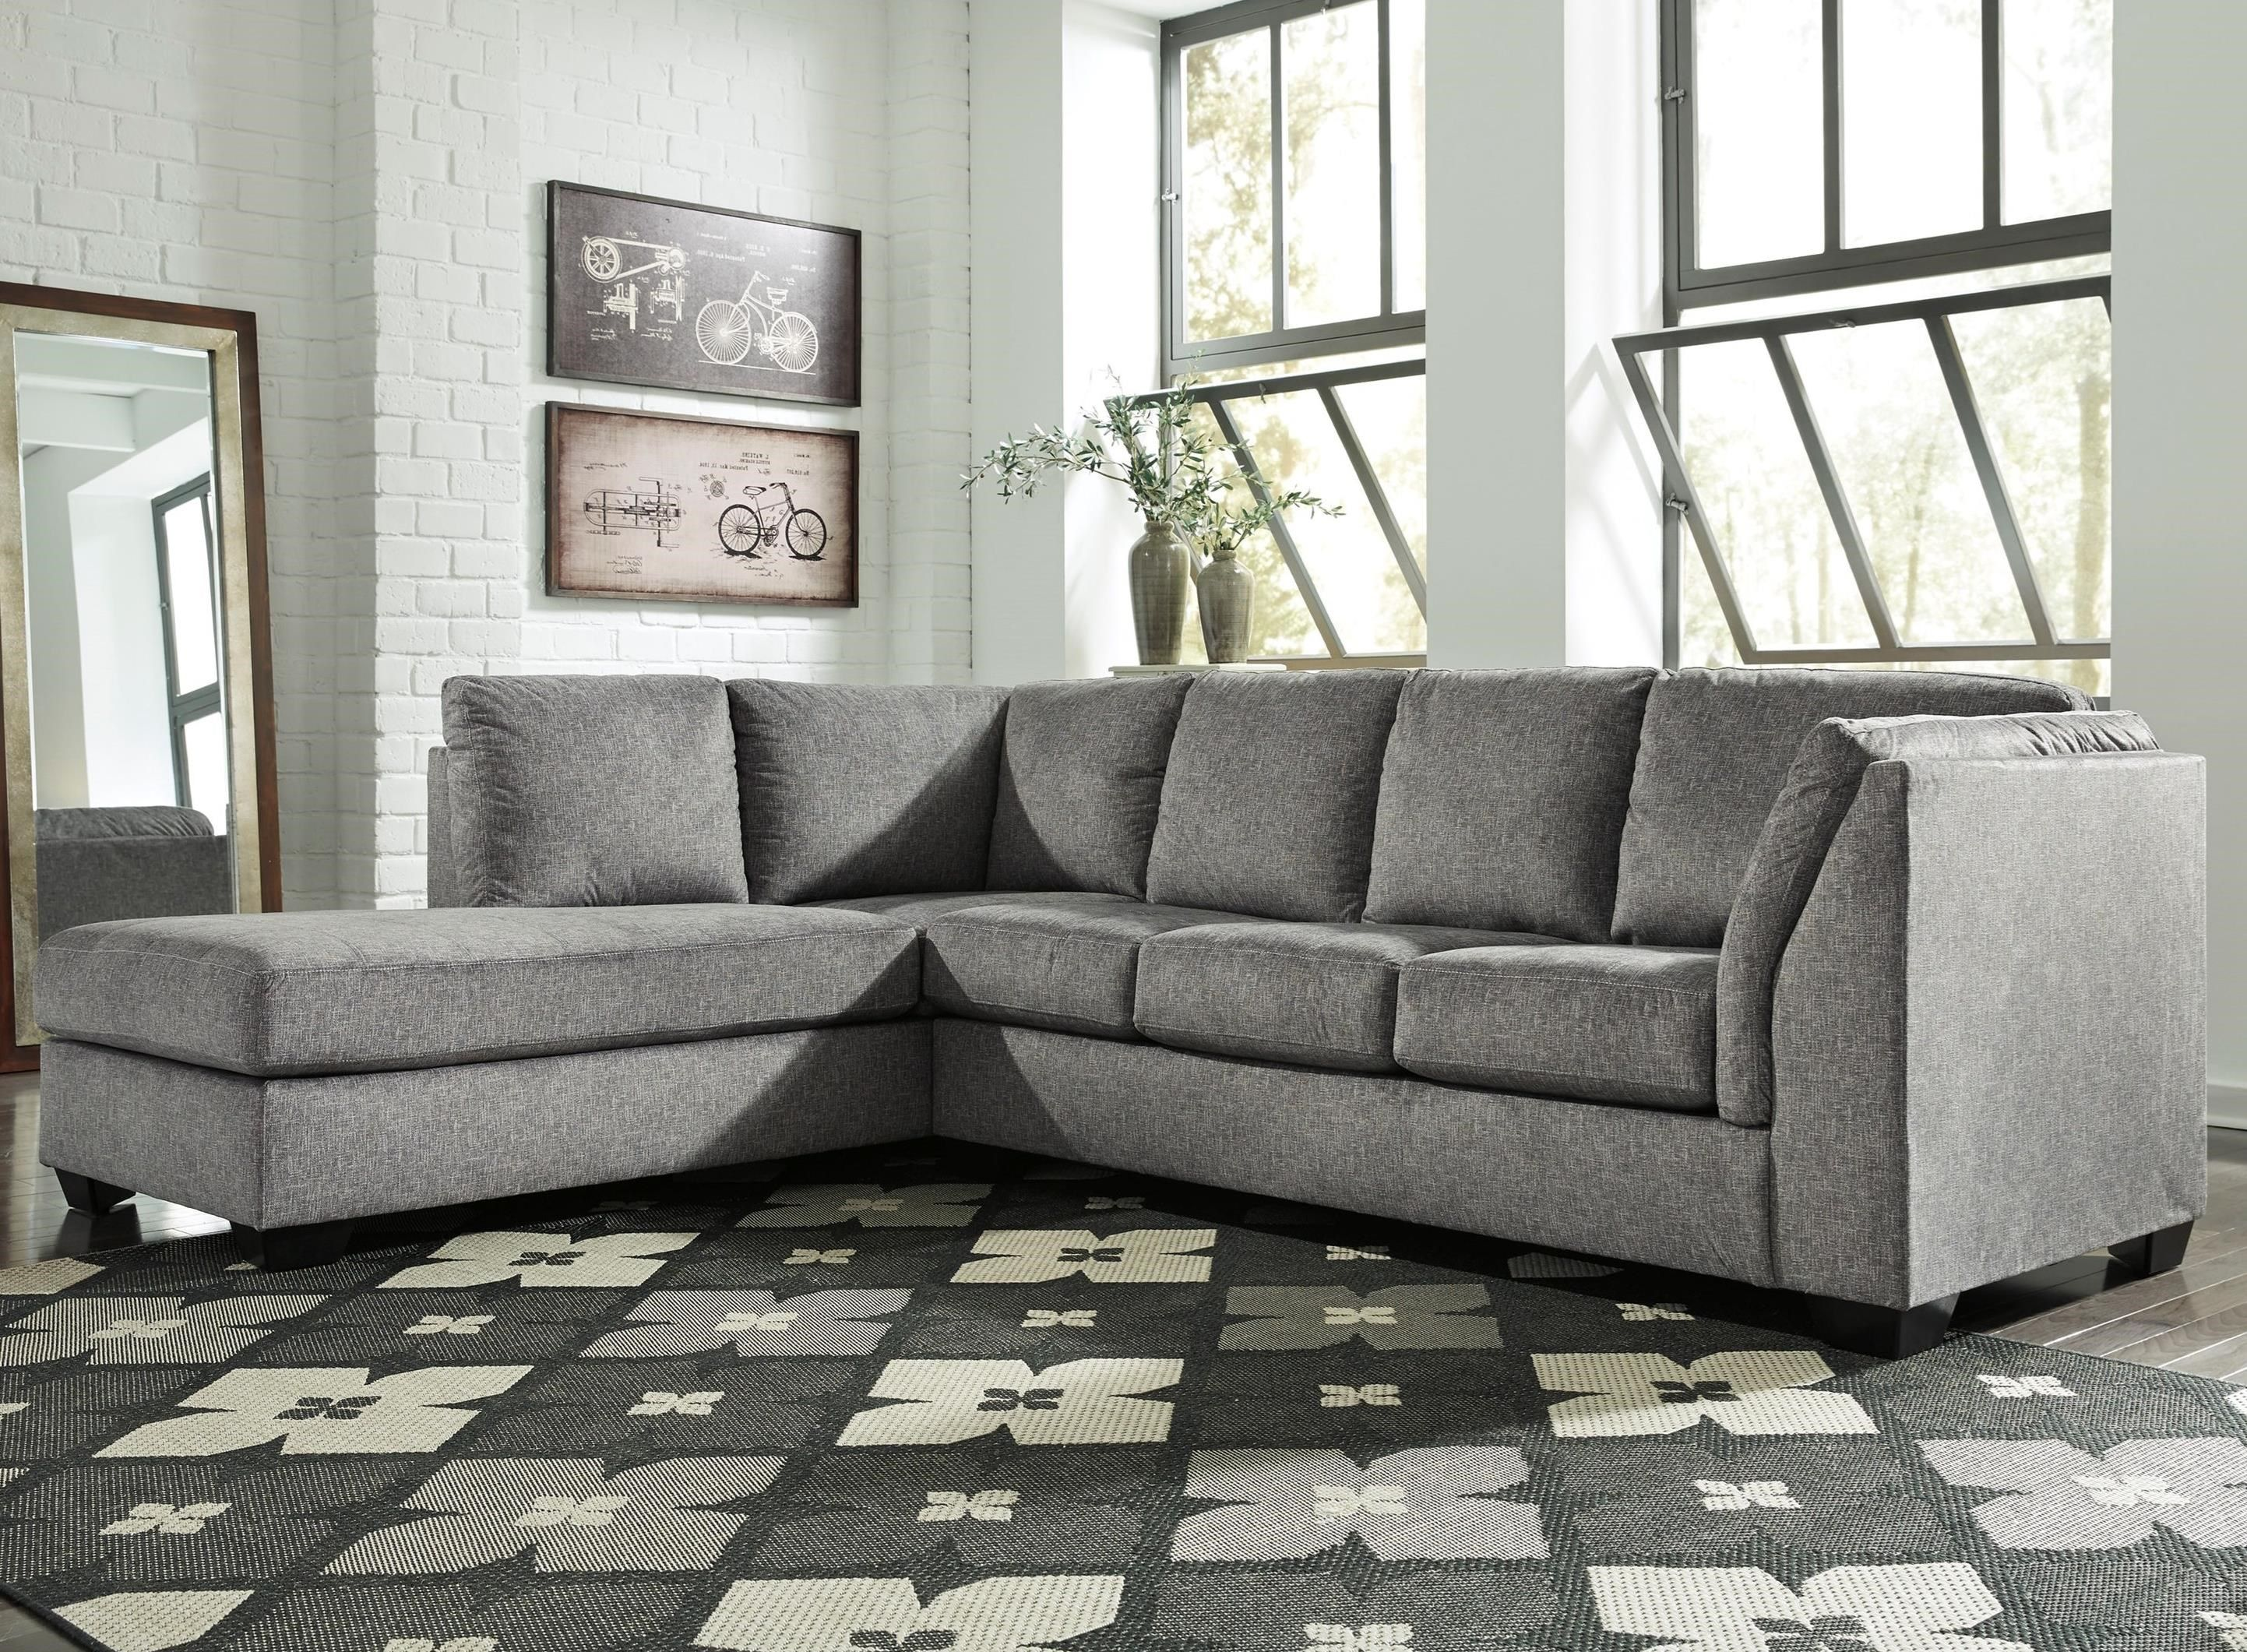 Belcastel 2 Piece Sectional With Chaise By Benchcraft At Rife S Home Furniture 2 Piece Sectional Sofa Sofa Home Sectional Sofa